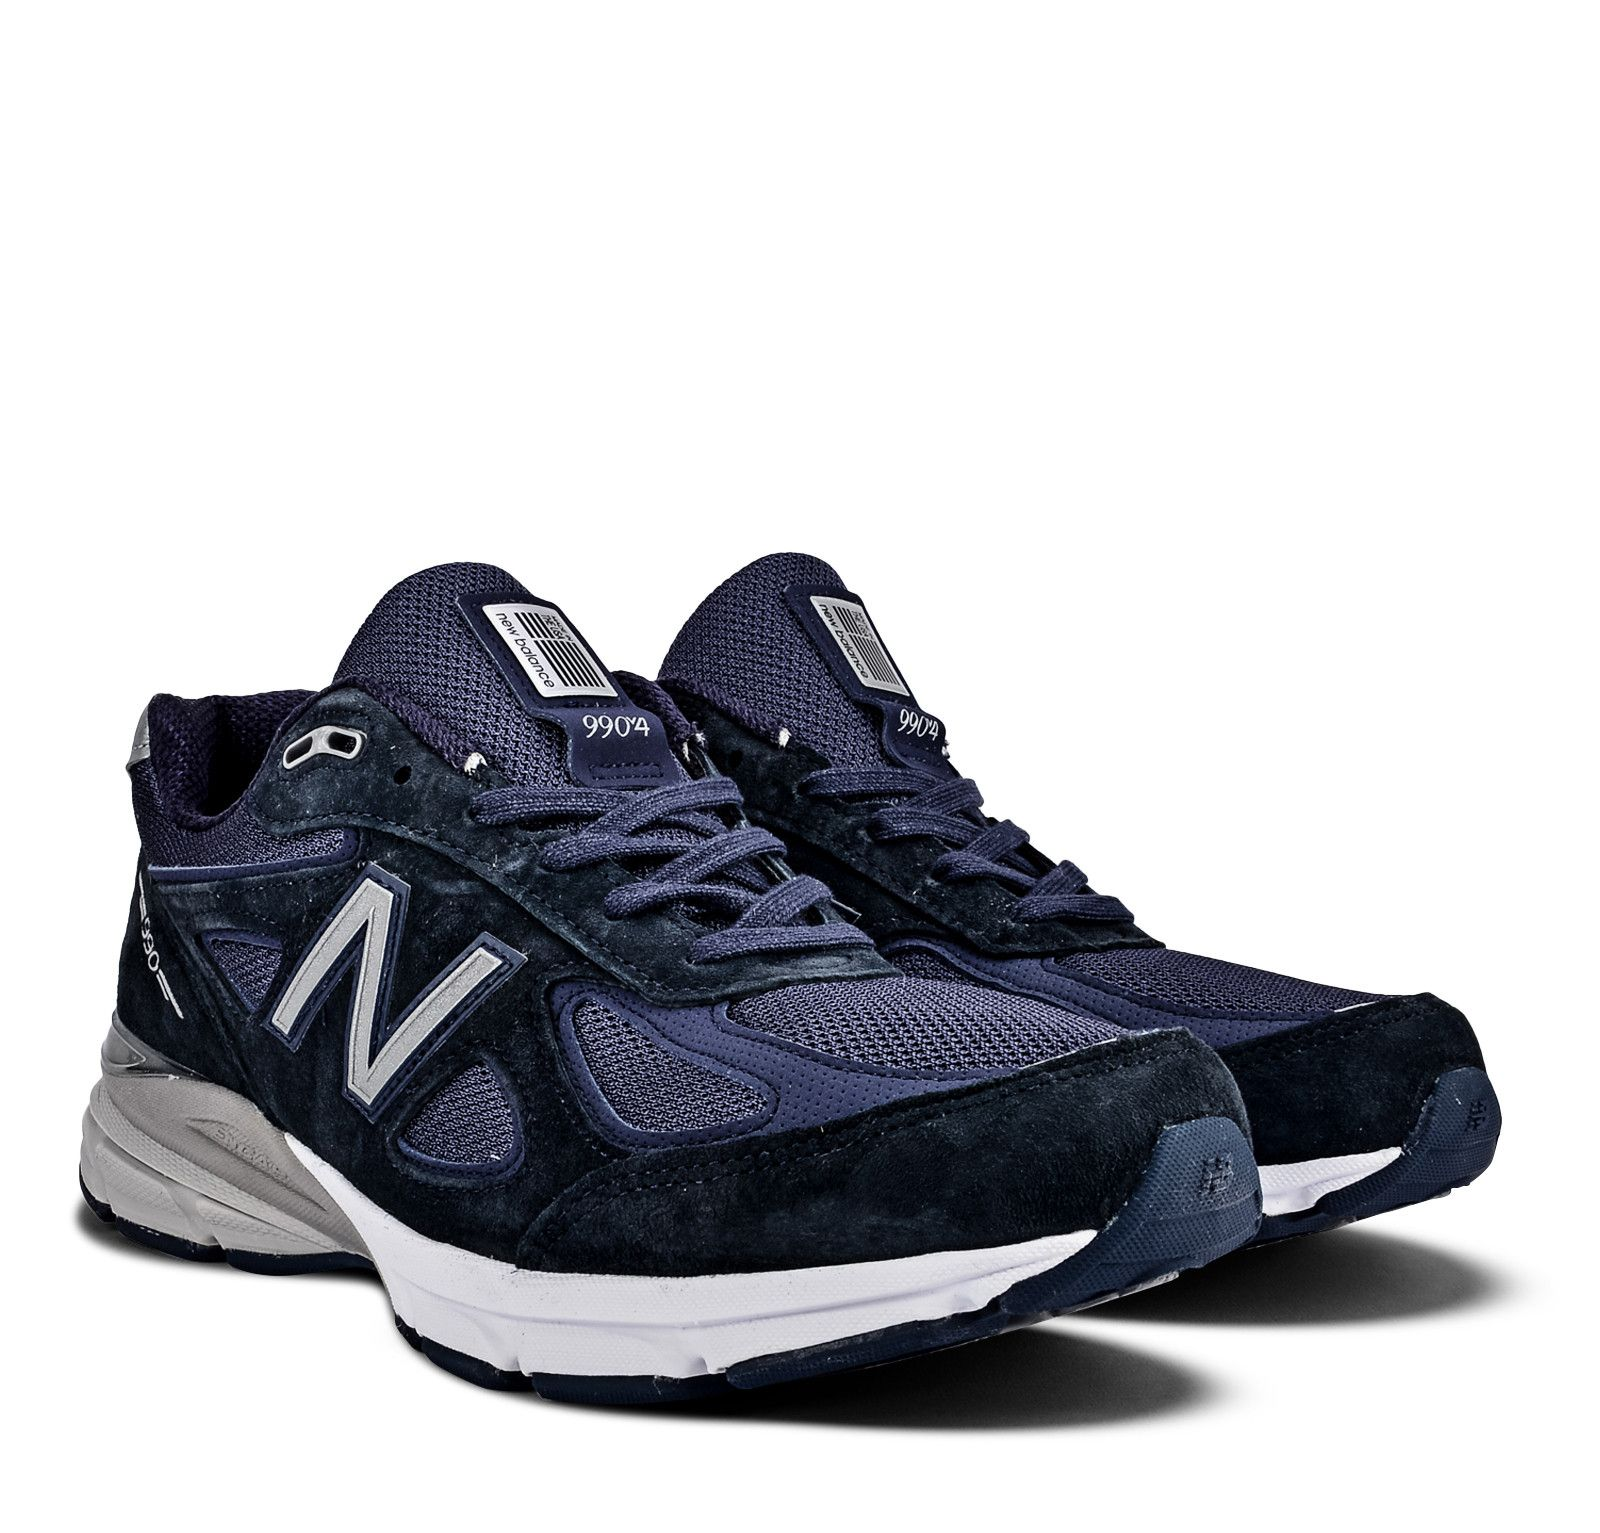 new balance 990 alternative